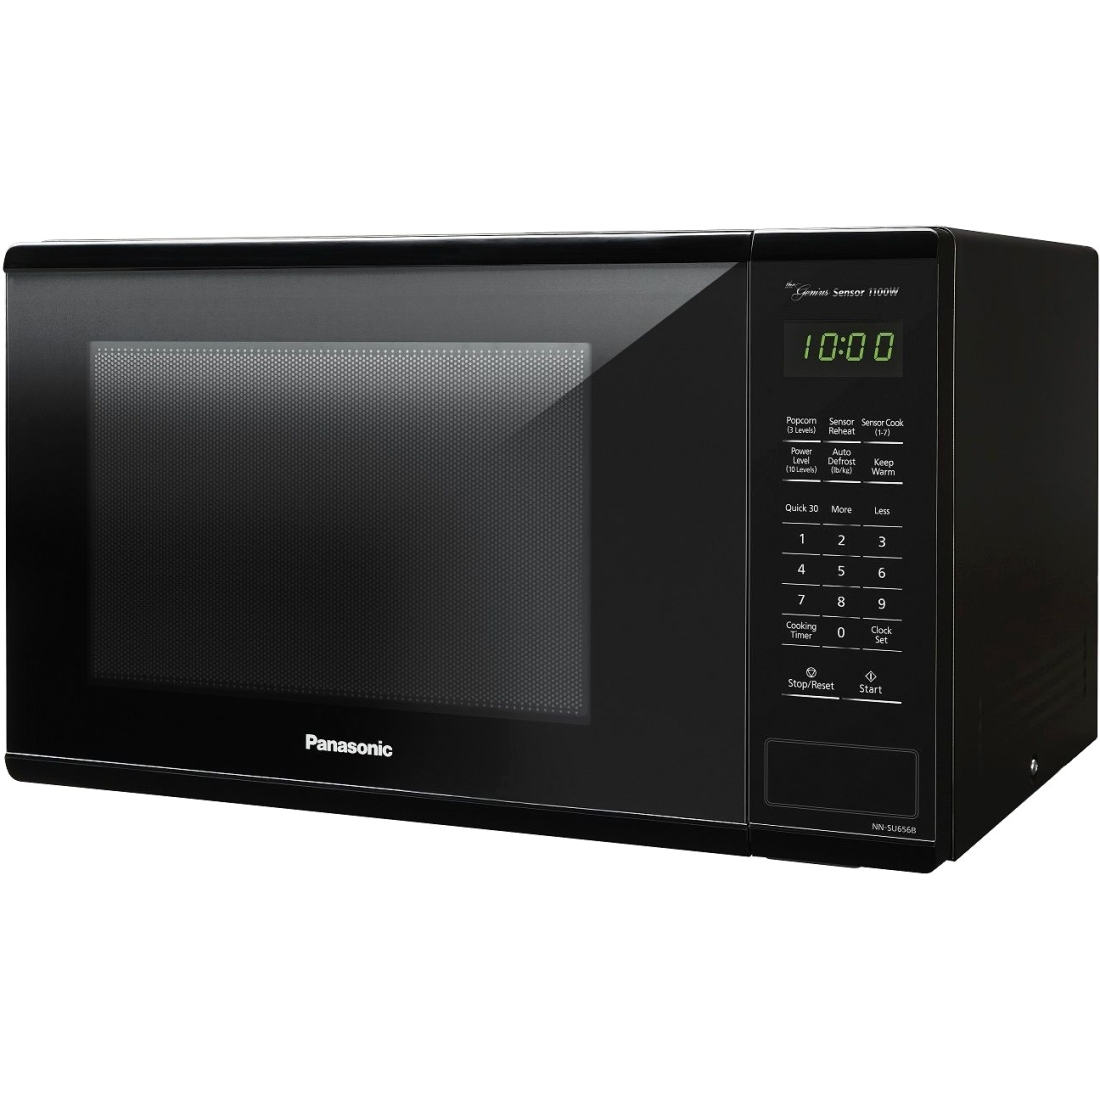 Panasonic 1.3 cu ft Microwave Oven, Black